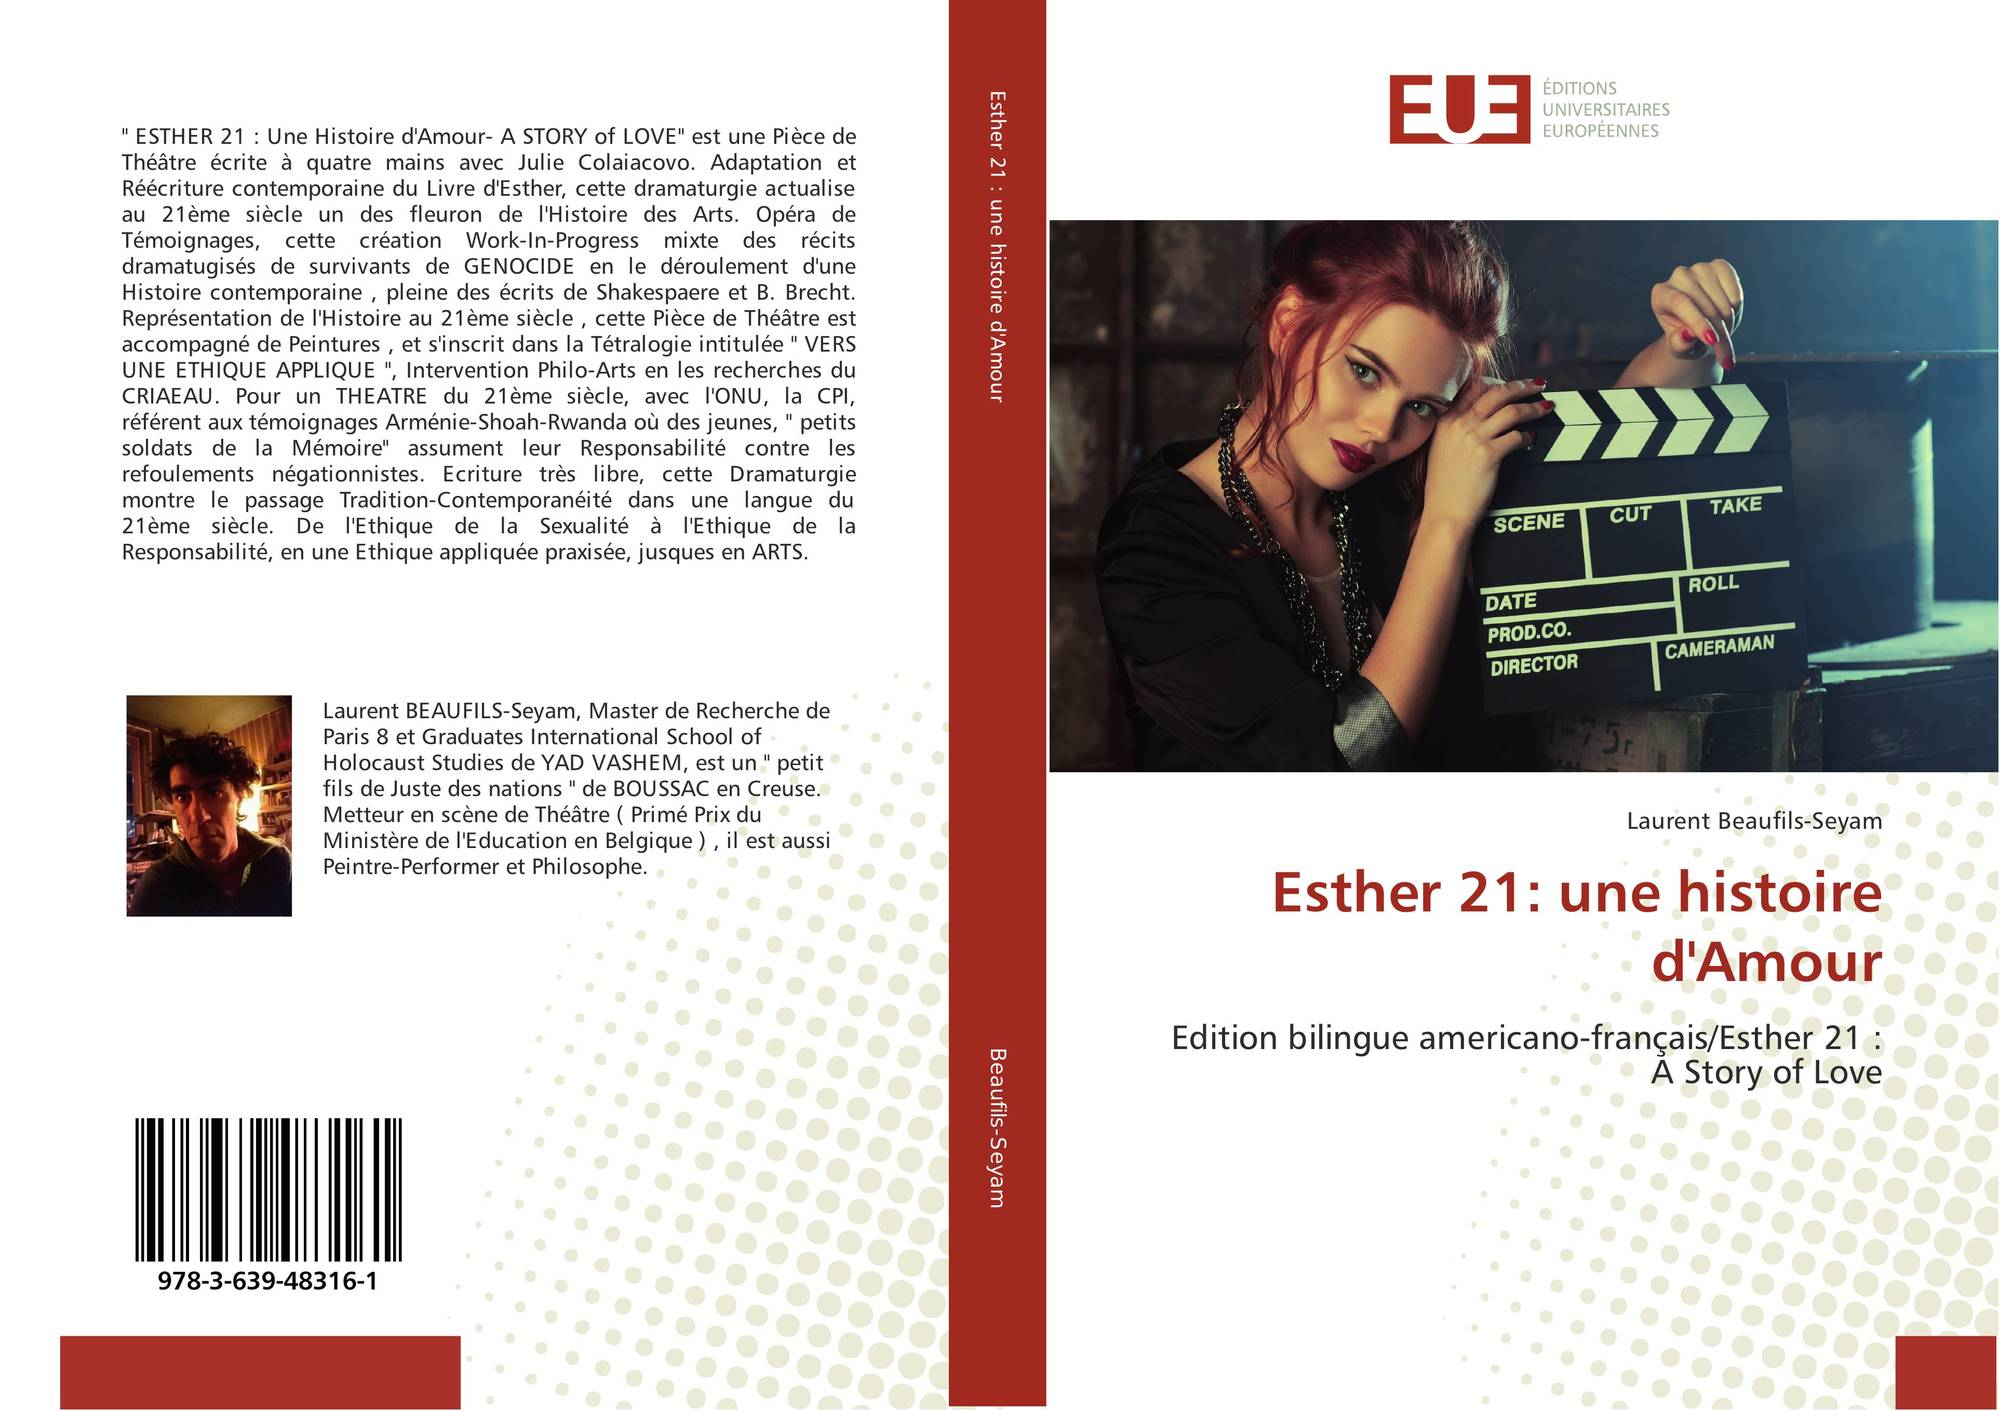 Bookcover of Esther 21: une histoire d'Amour